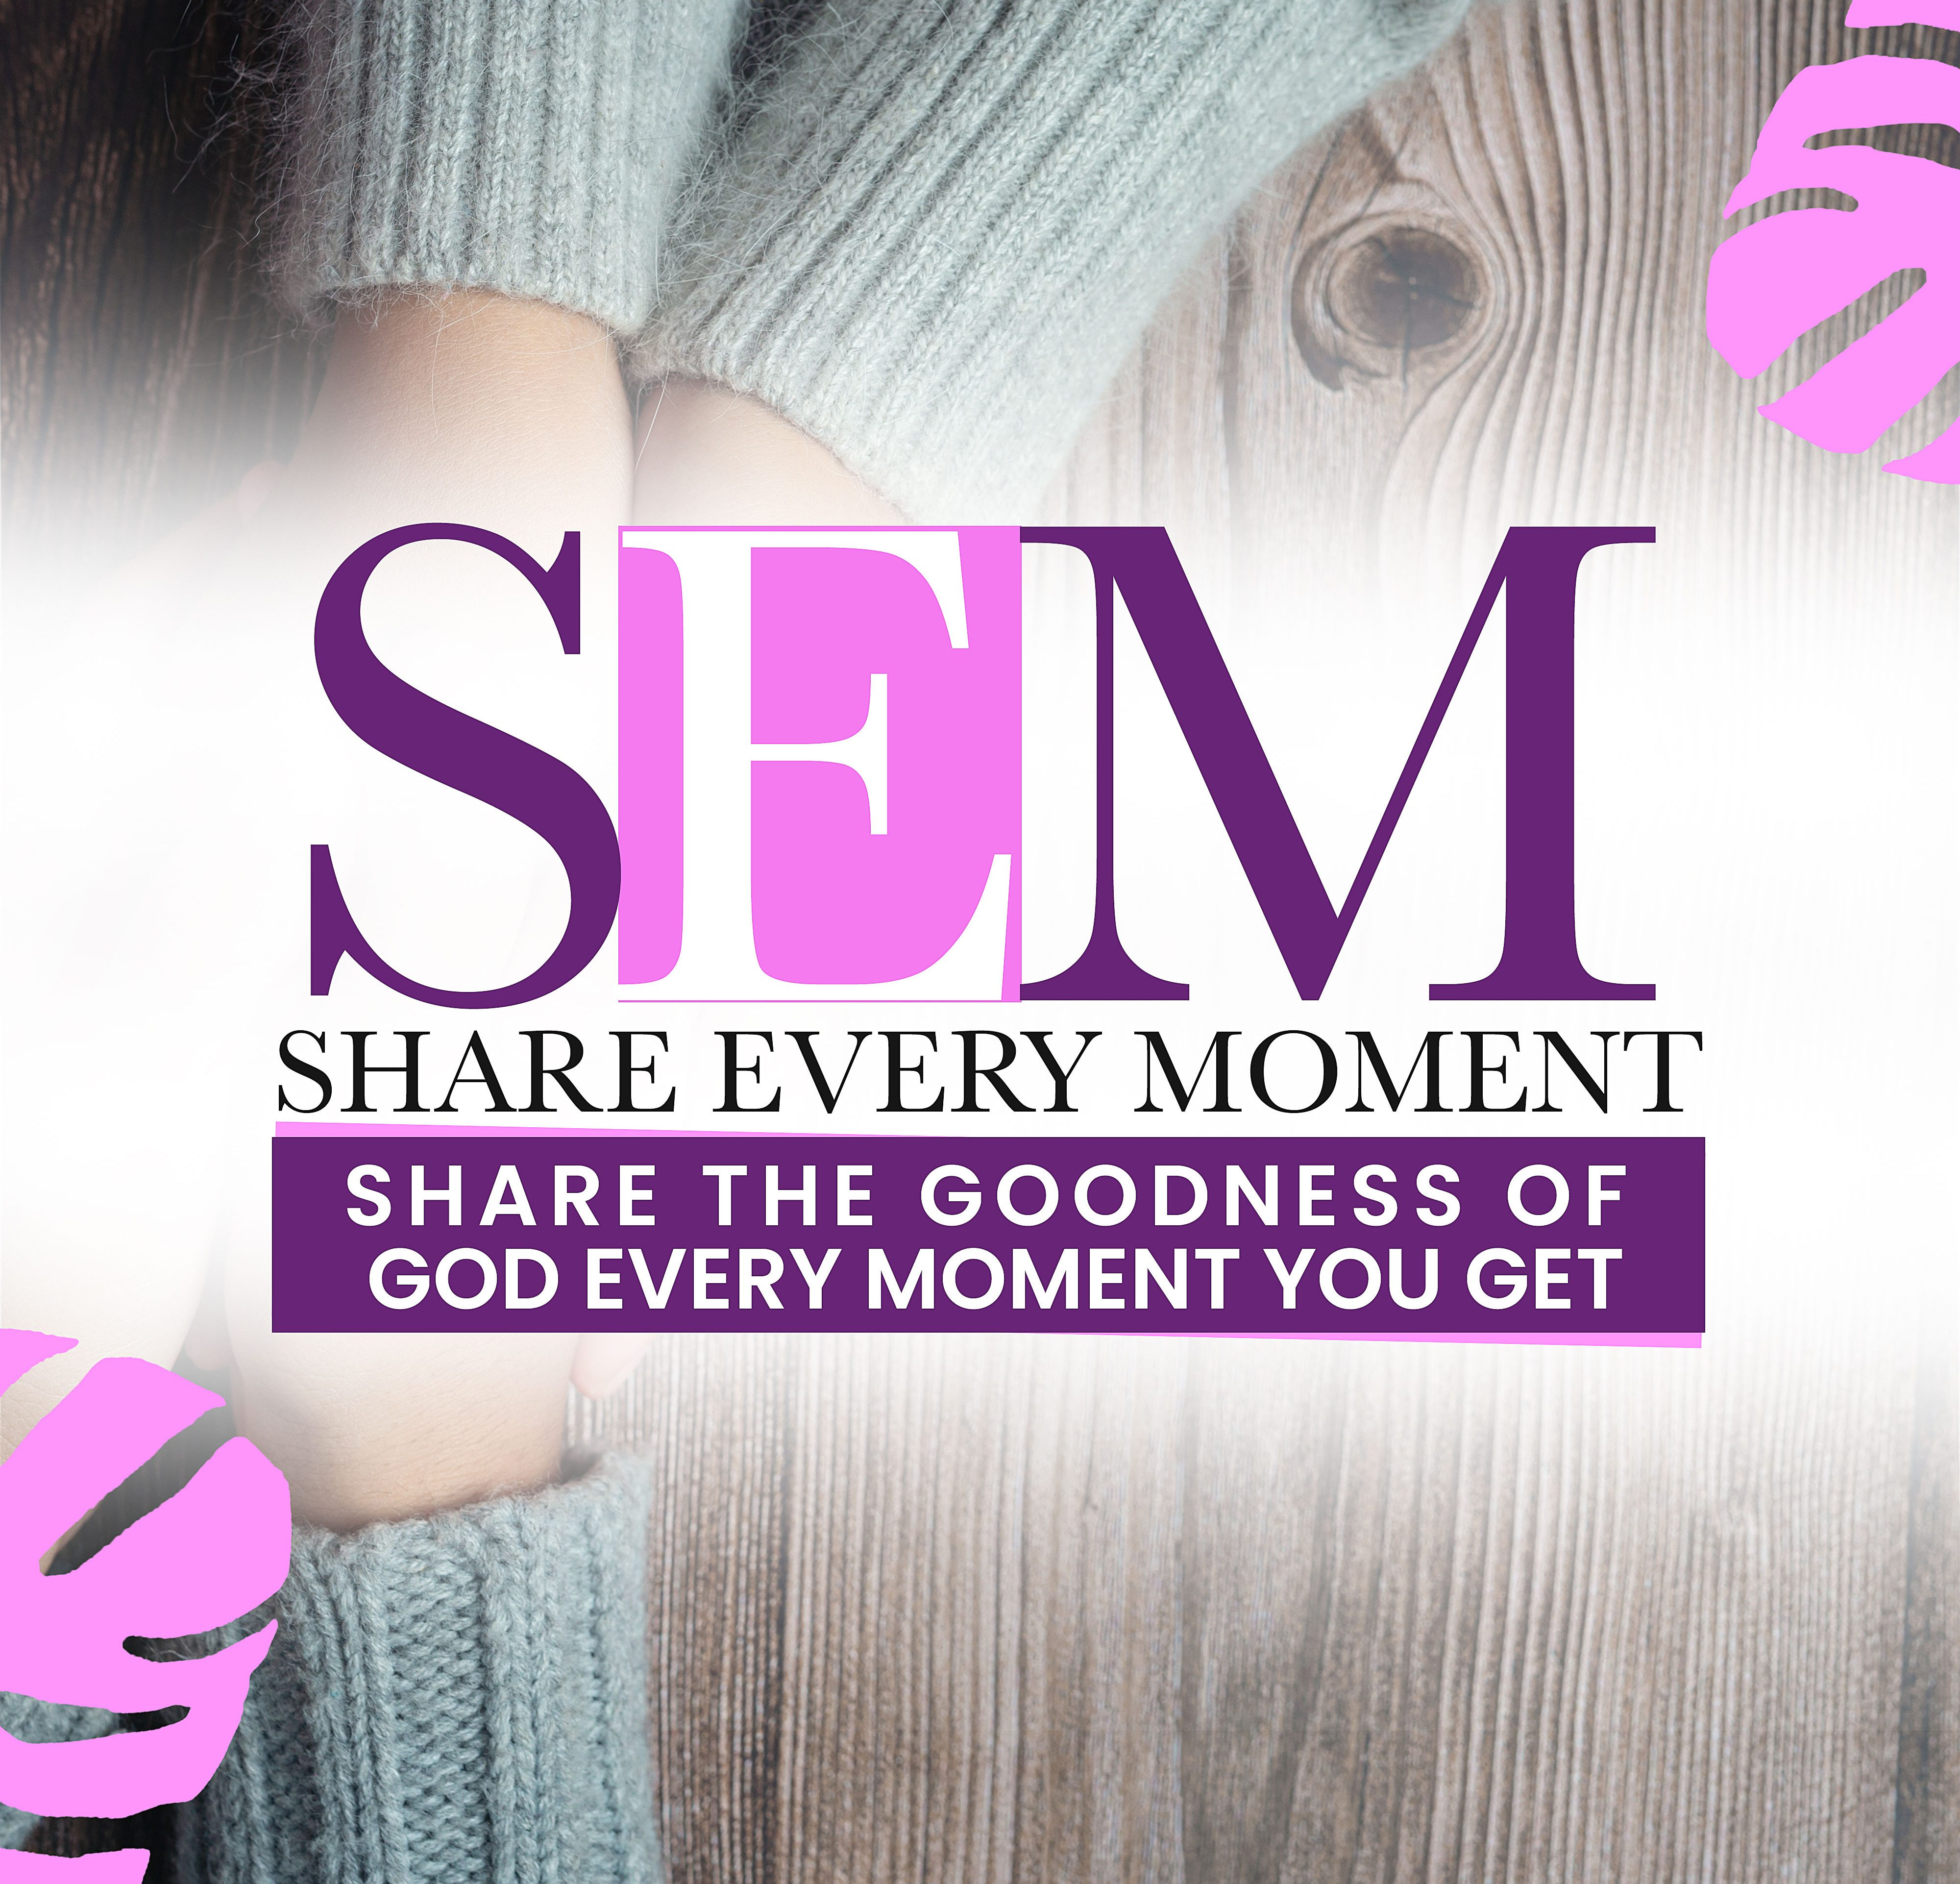 Share every moment